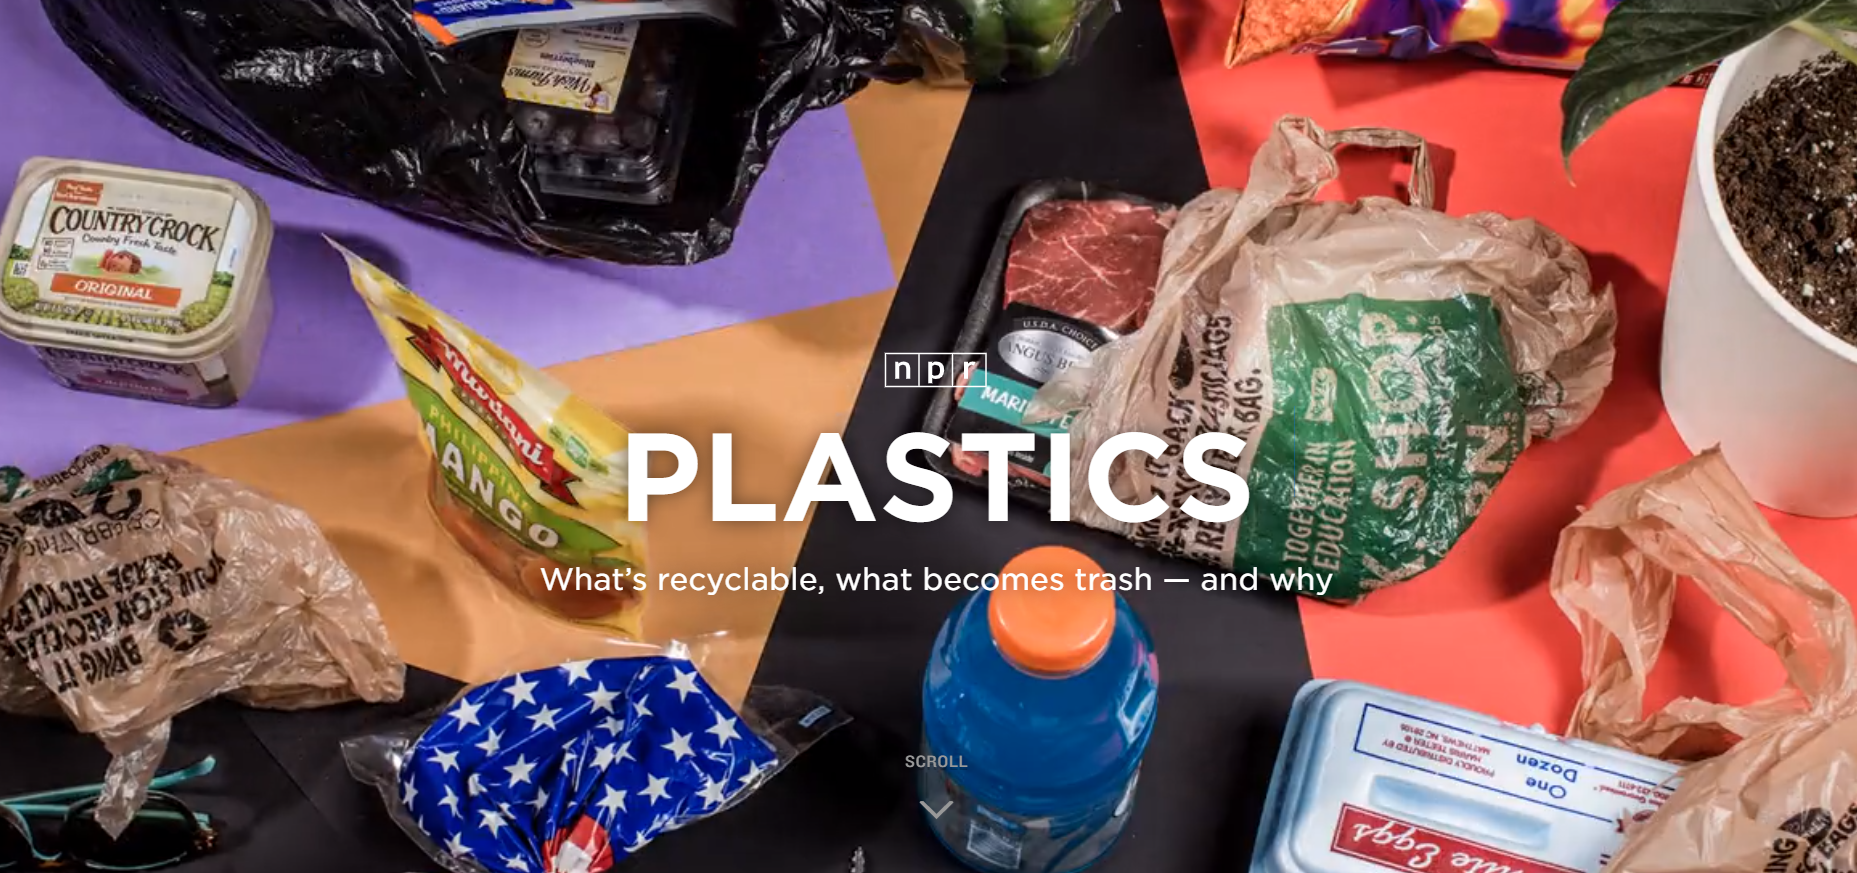 PLASTICS What's recyclable, what becomes trash — and why